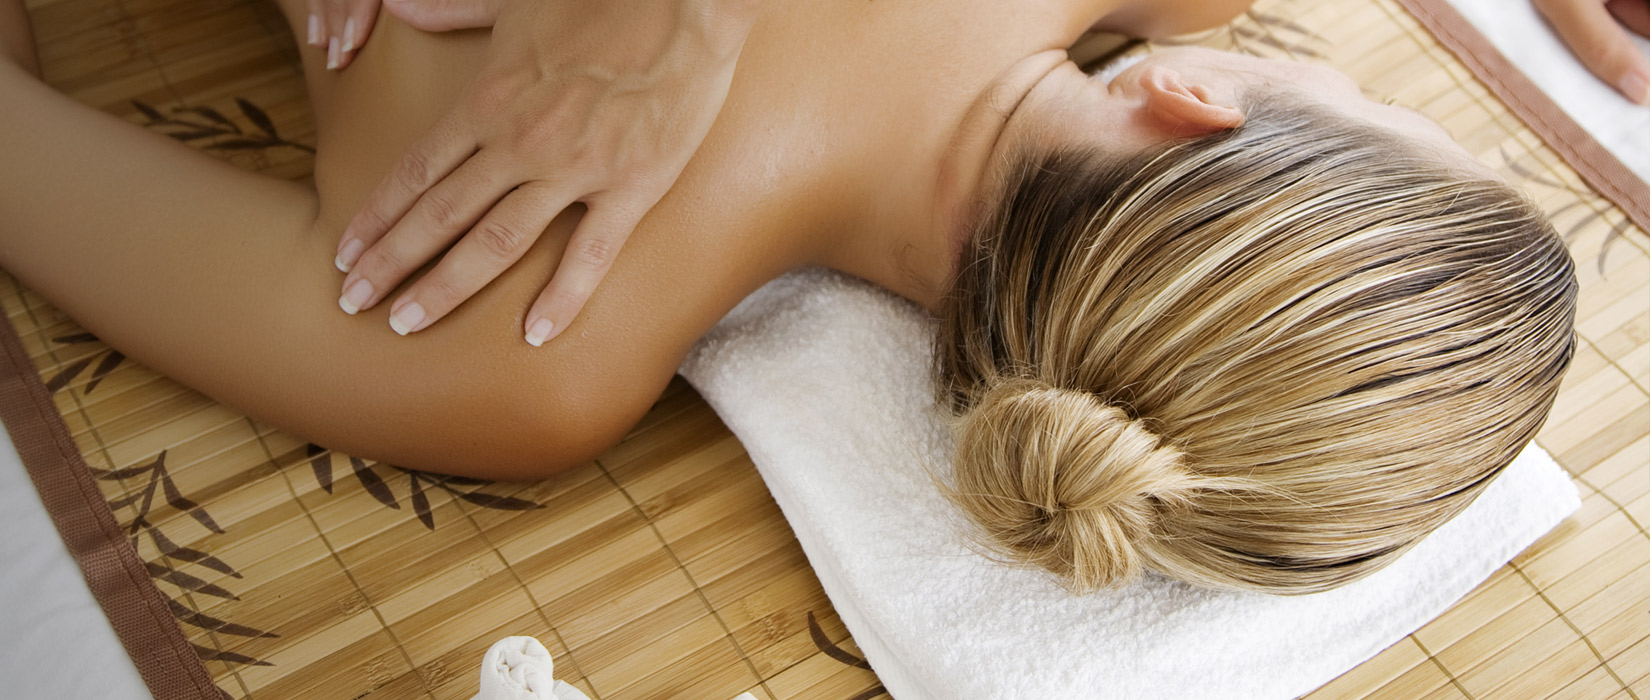 Leesburg GA Massage Therapy